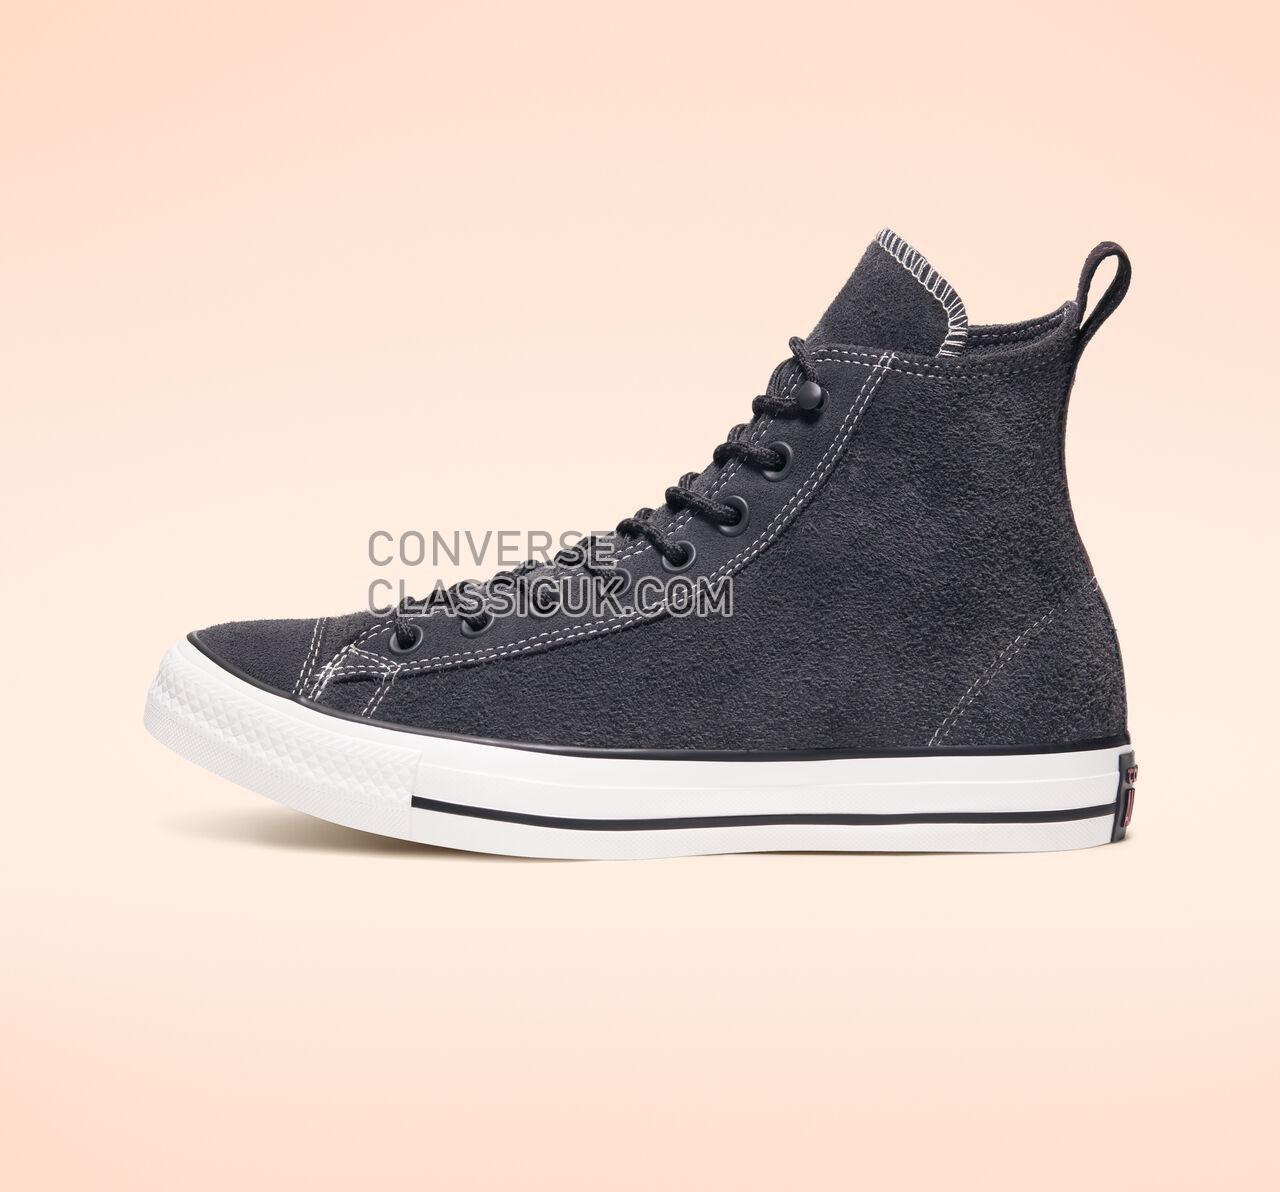 Converse Chuck Taylor All Star Suede High Top Mens Womens Unisex 165845C Almost Black/Almost Black Shoes